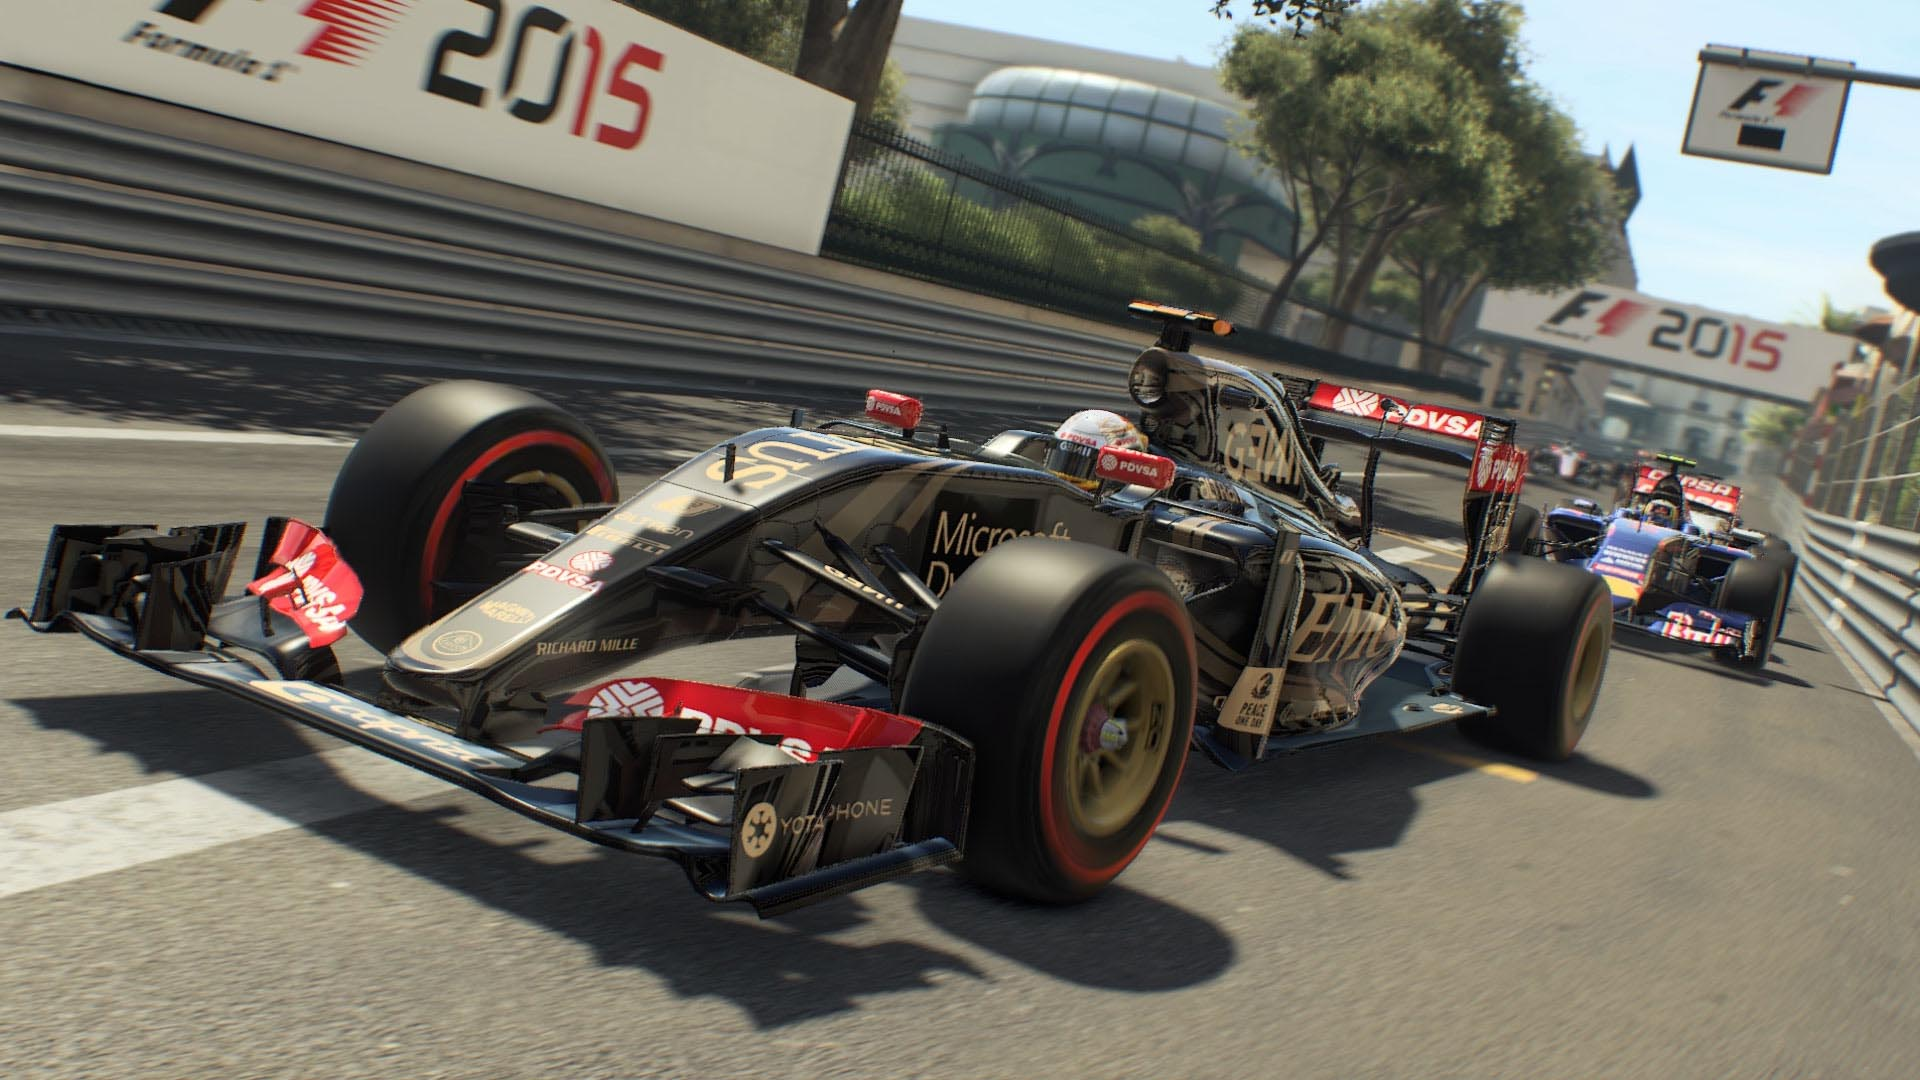 First up is the newest installment in the venerable F1 game series from developer Codemasters. It features an all-new game engine which delivers better graphics and physics. However, fans of <i>F1 2014</i> should note that there is no co-op or career mode this time around. | <b>For:</b> PC, PS4, Xbox One